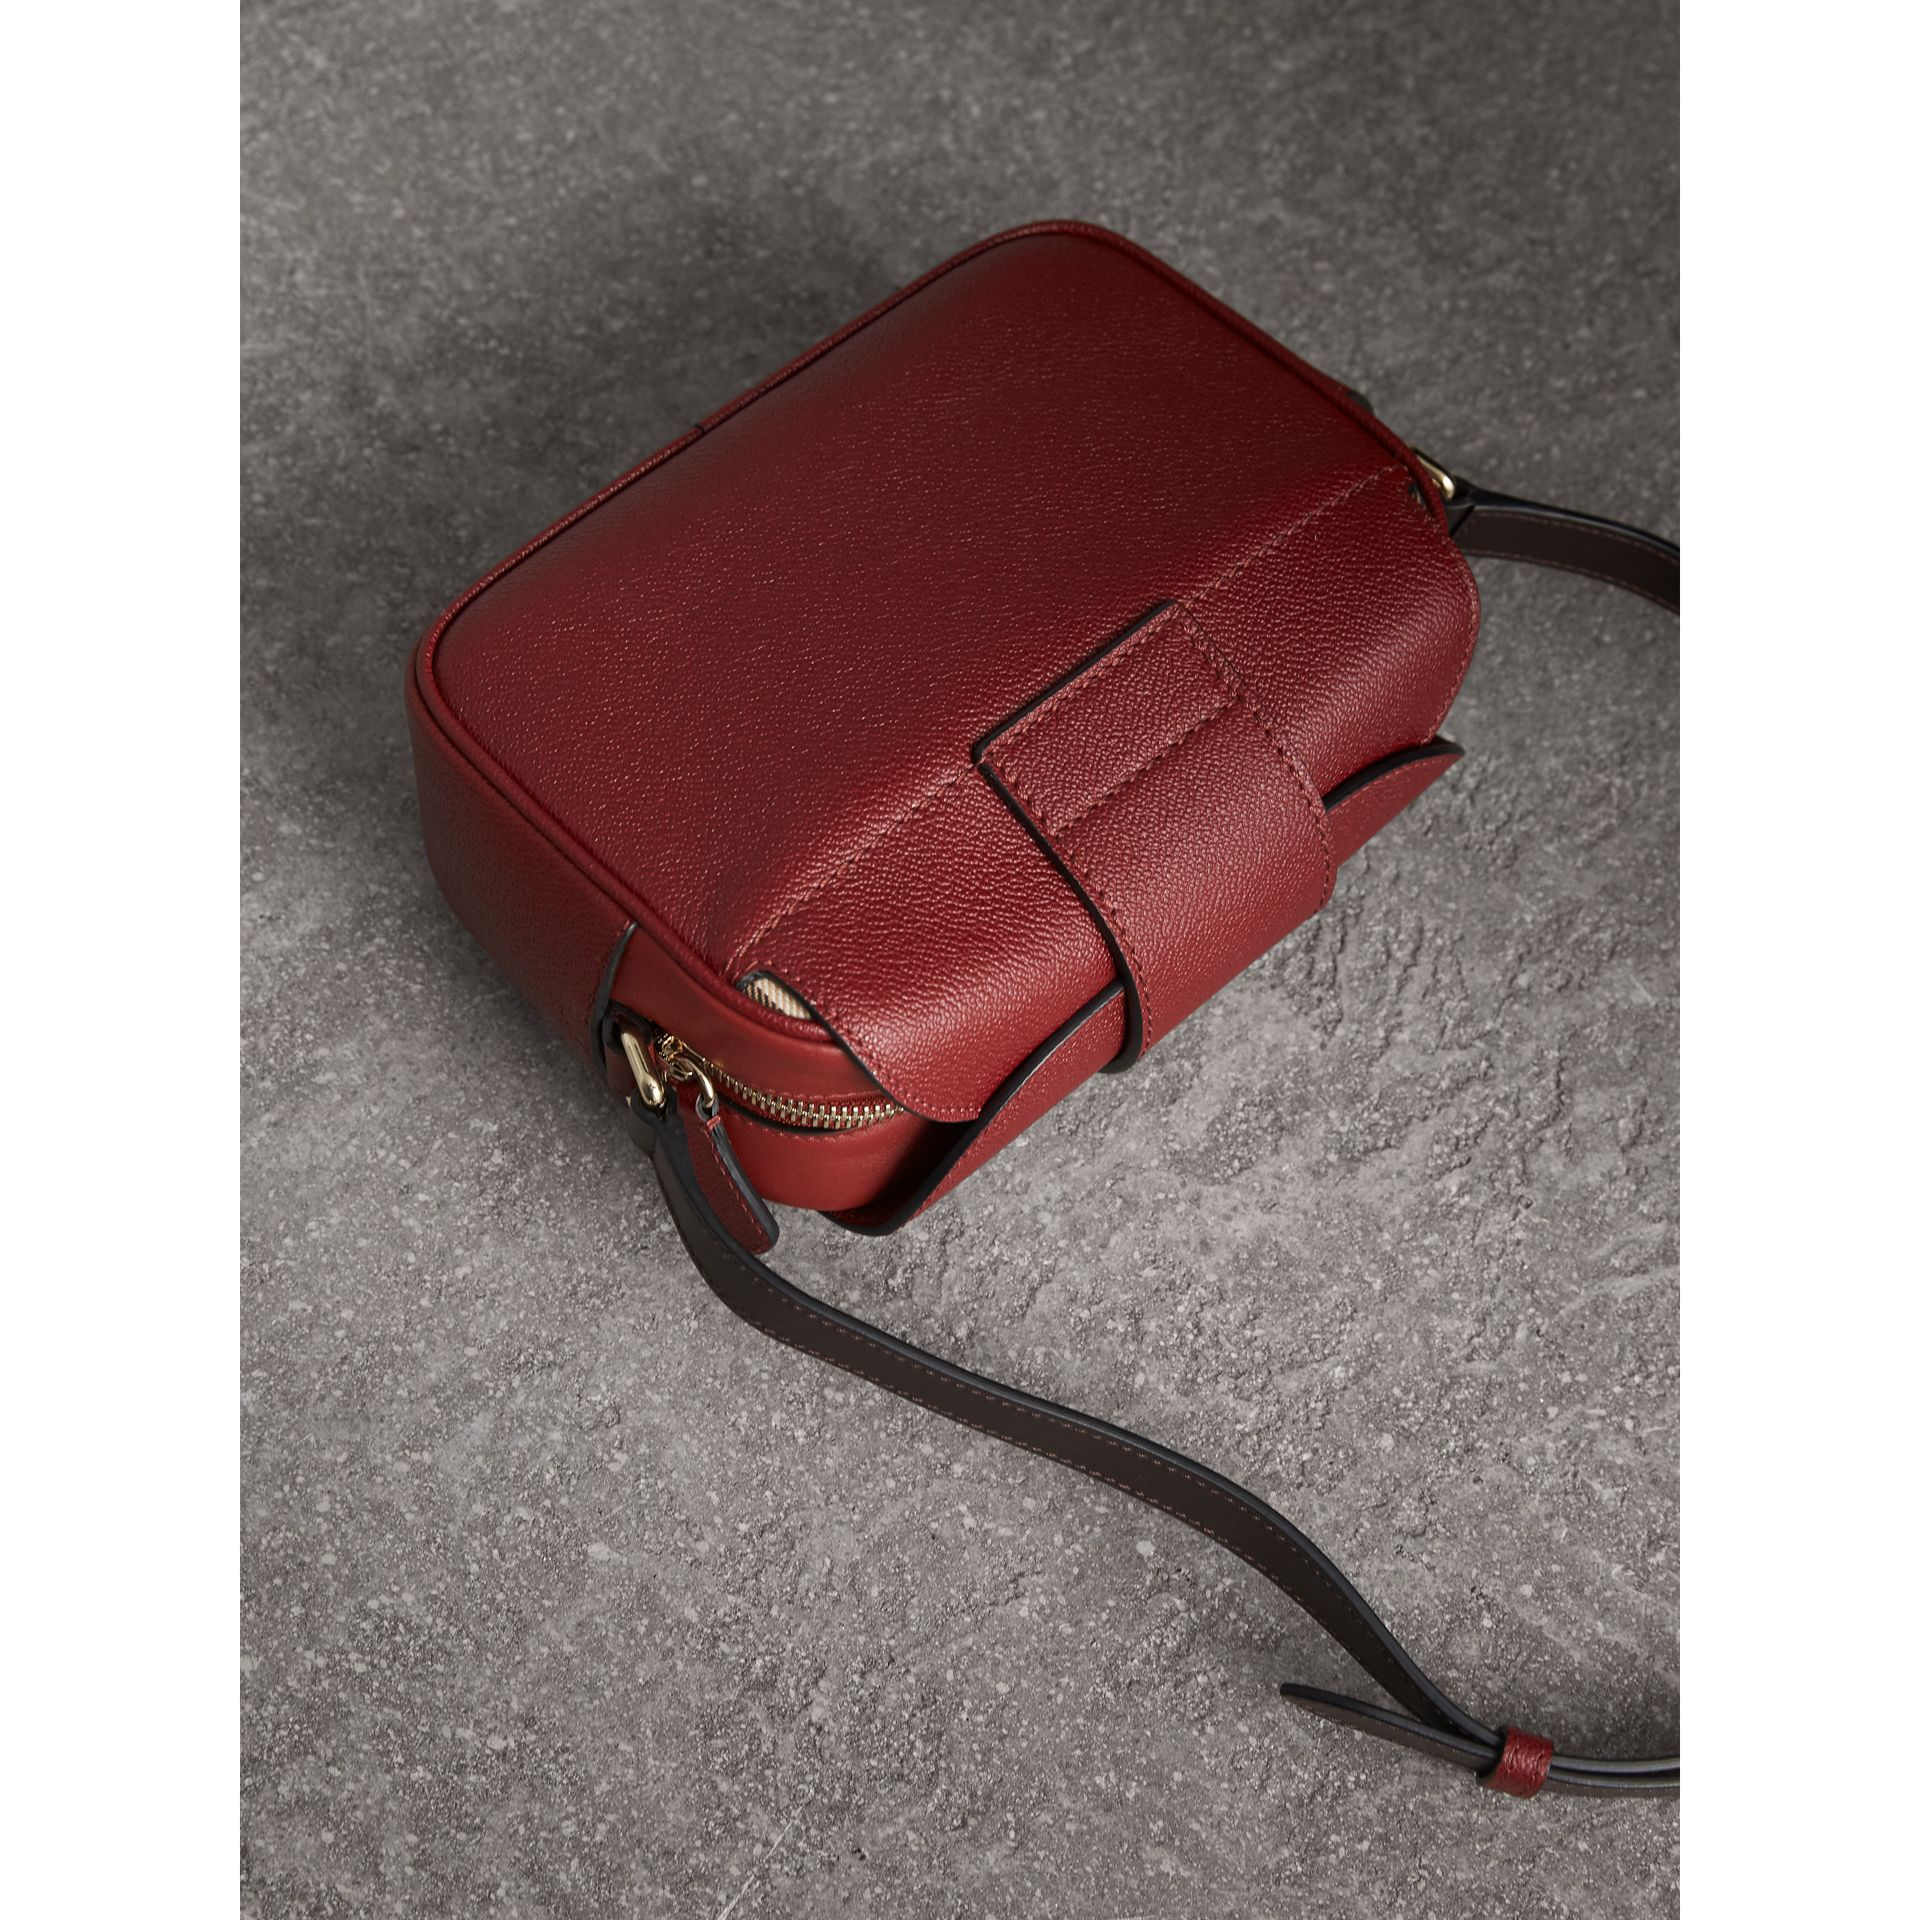 fe5ddd65933b The Small Buckle Crossbody Bag in Two-tone Leather in Antique Red ...